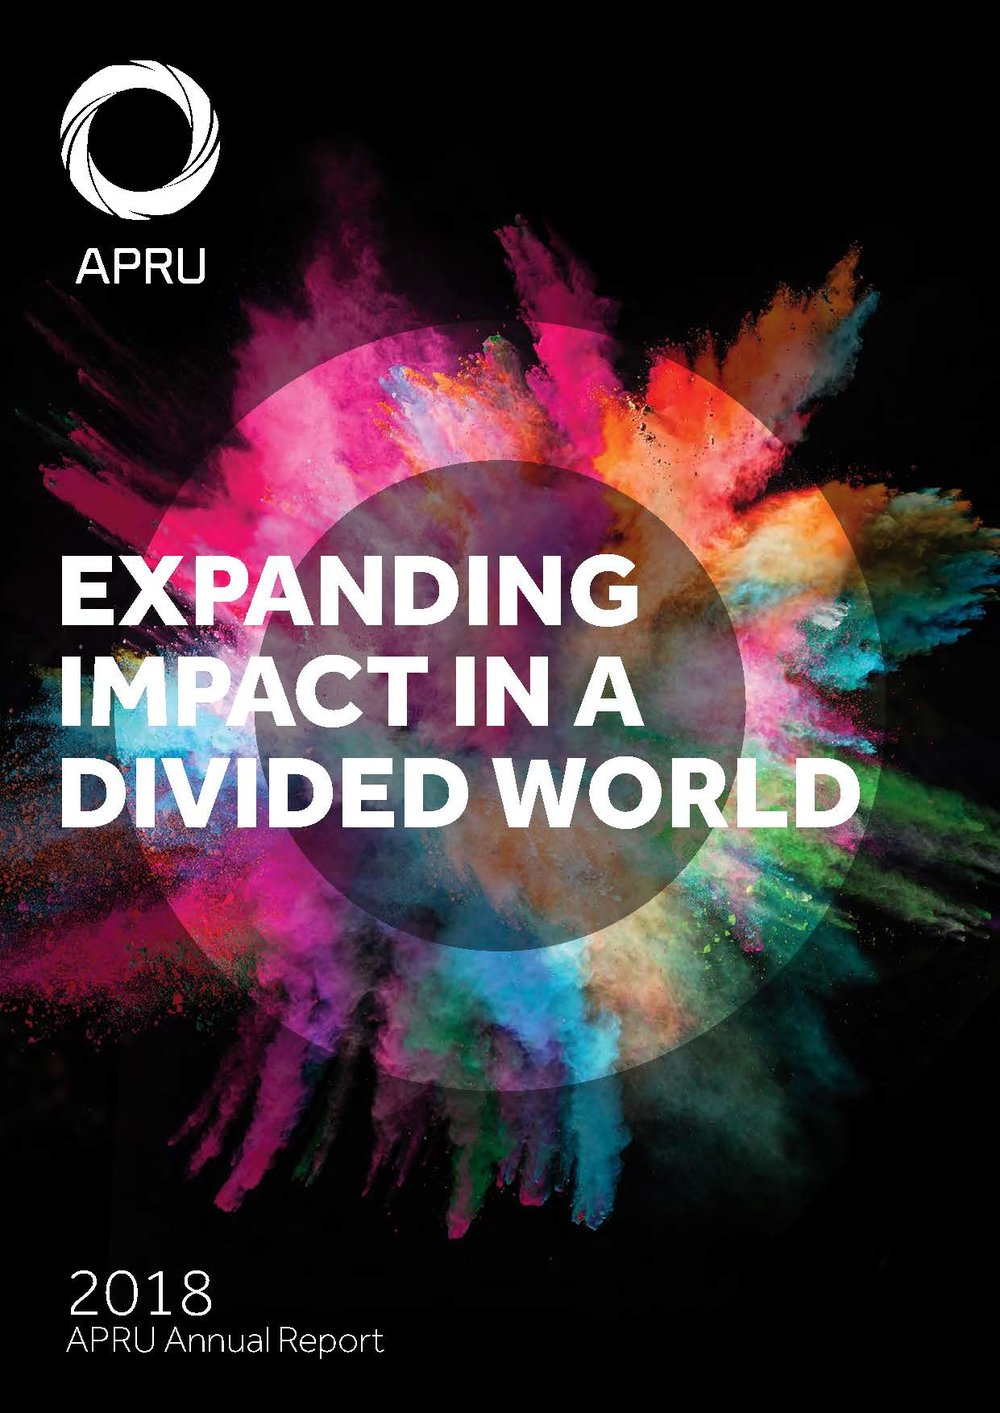 SEE WHAT WE HAVE BEEN UP TO - APRU 2018 Annual Report